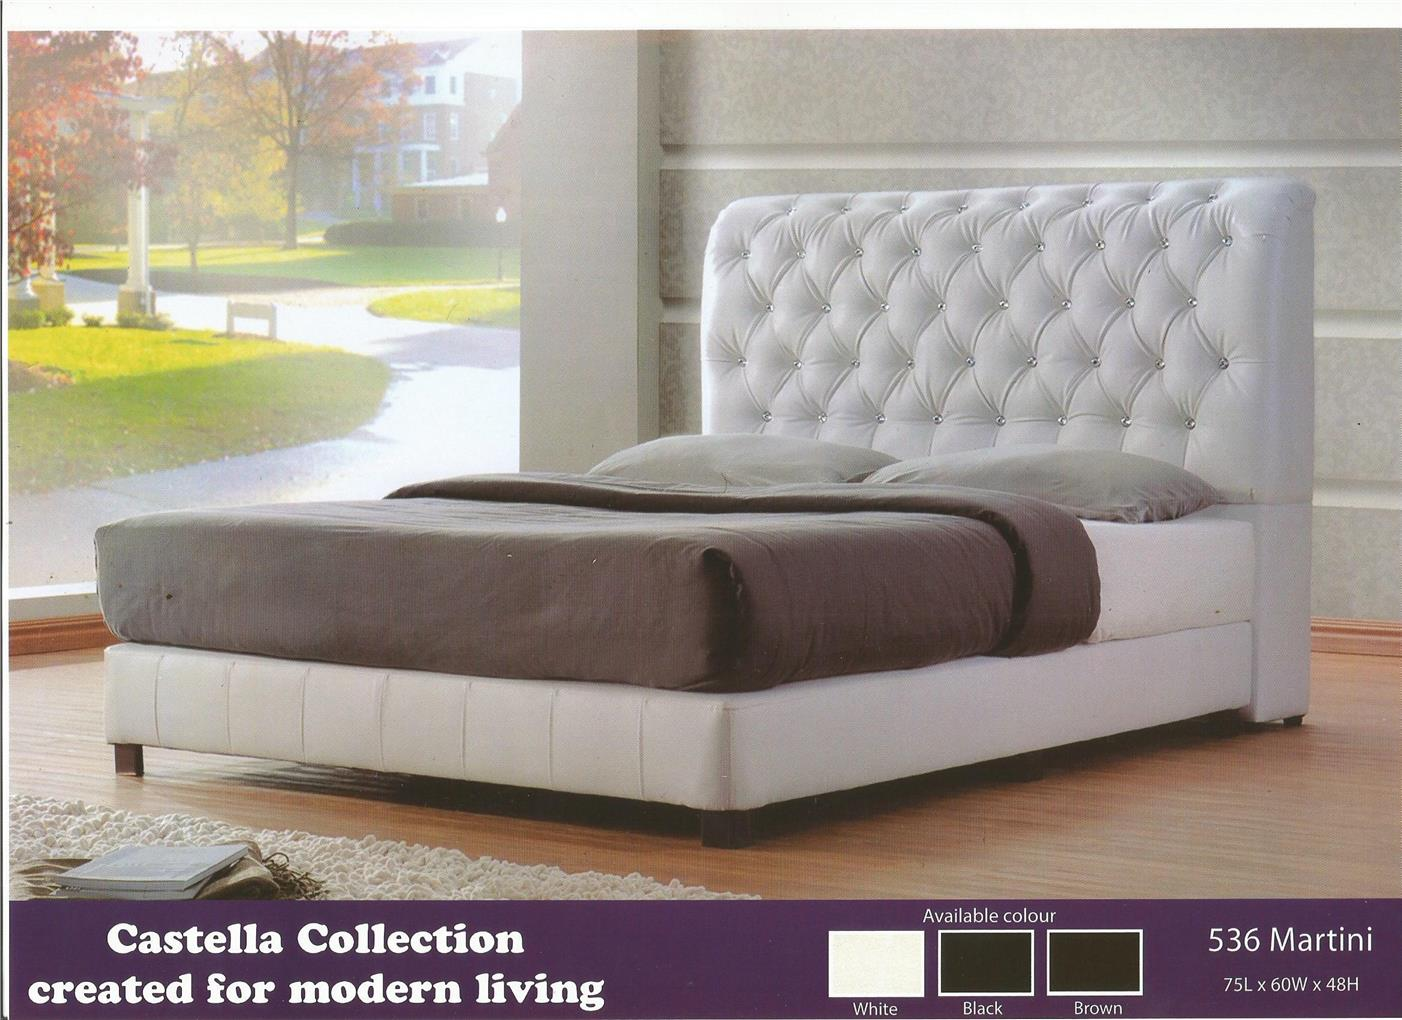 NiceHome furniture special offer divan bed Queen size MODEL - 536